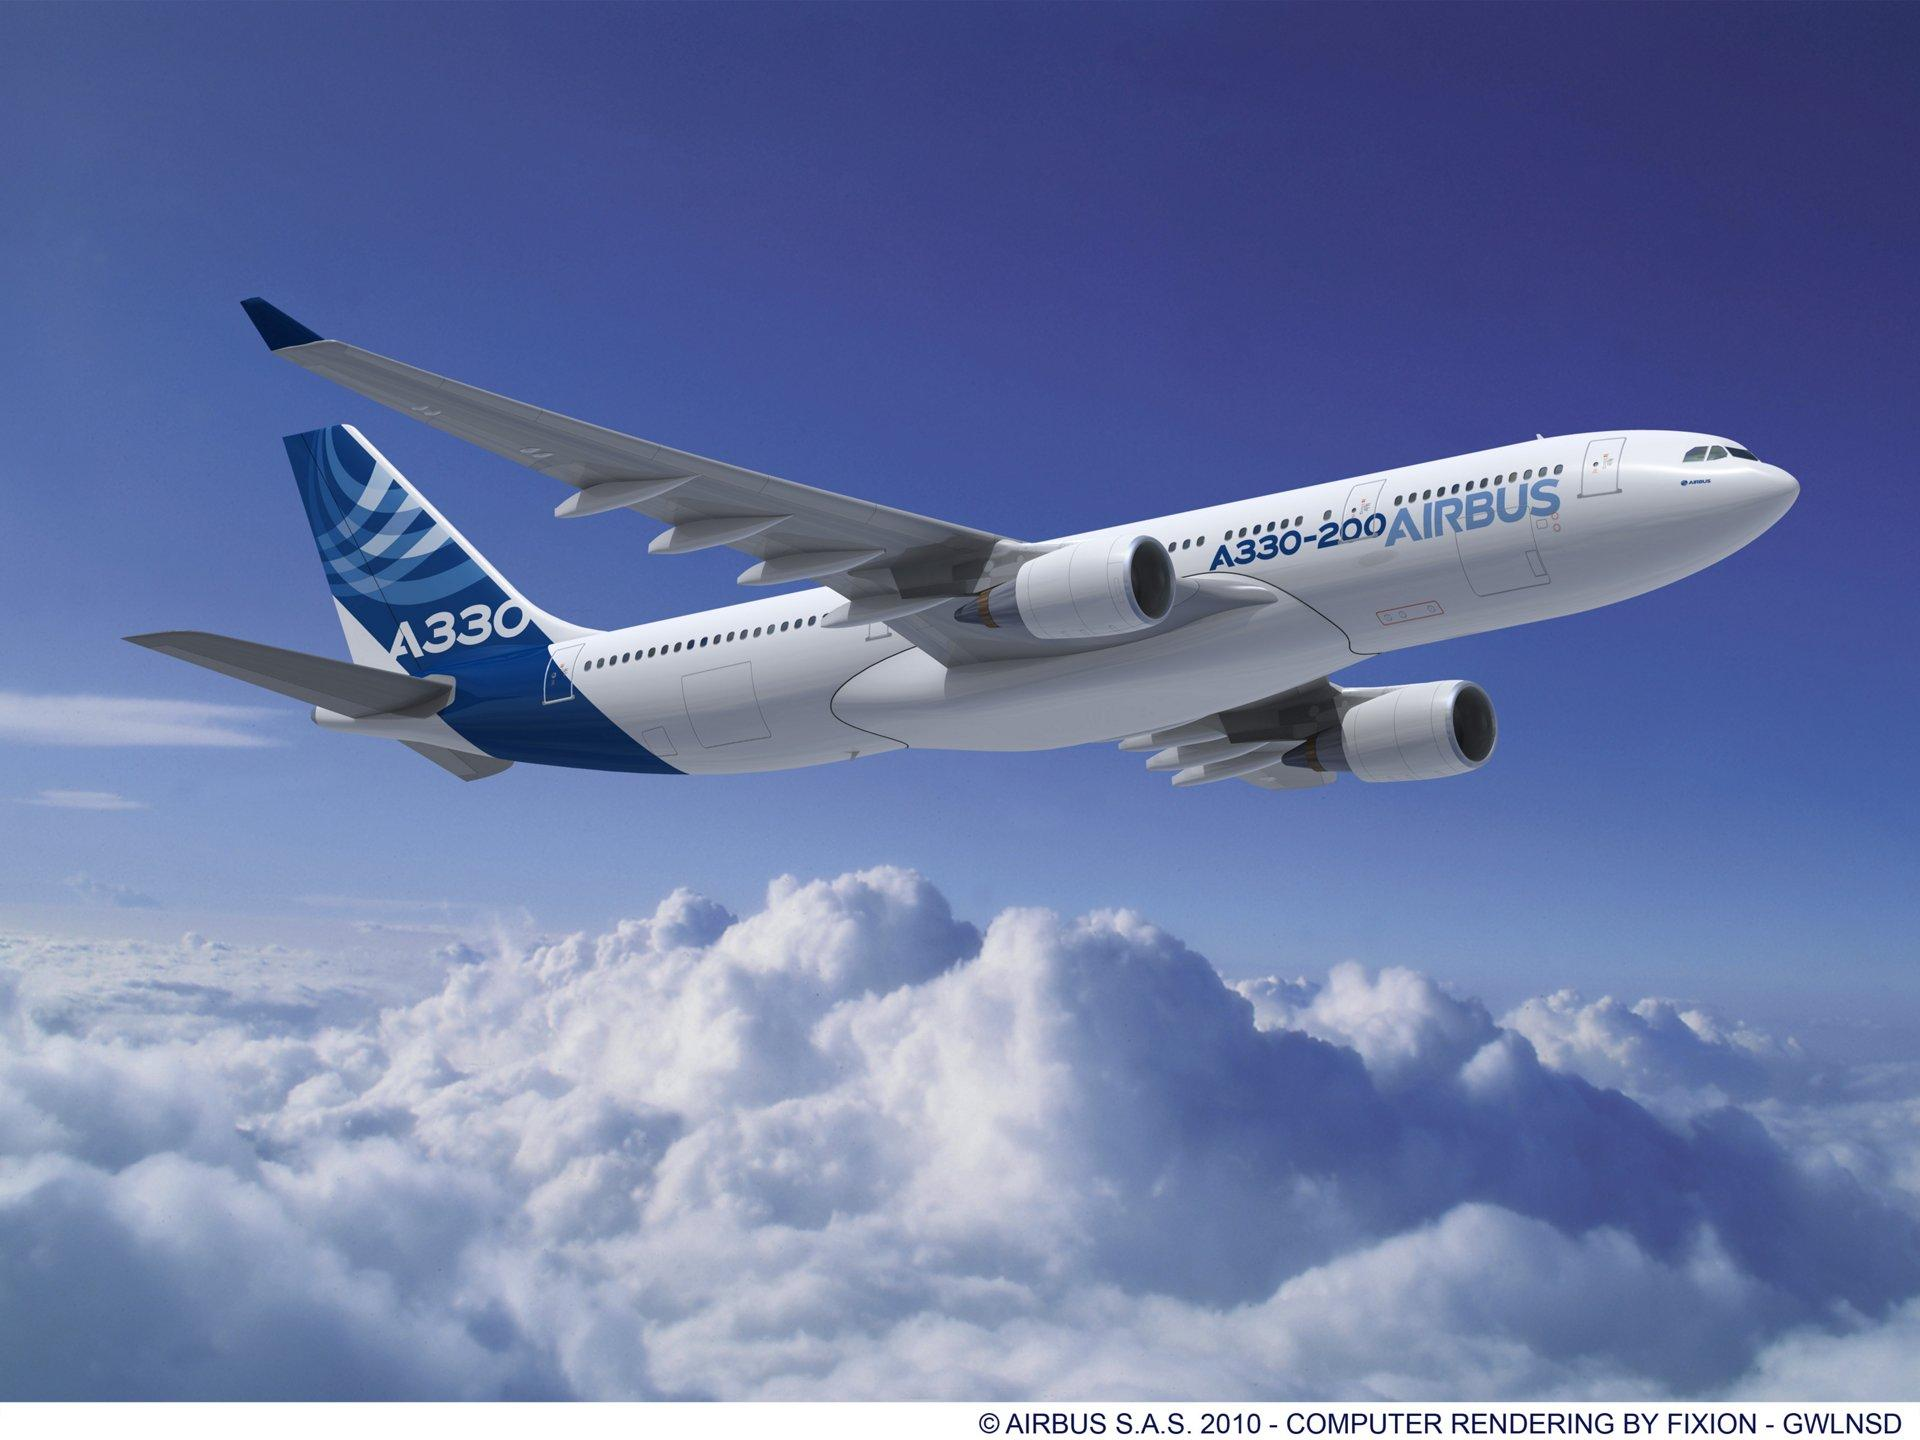 Turkmenistan to buy A330-200 Airbus